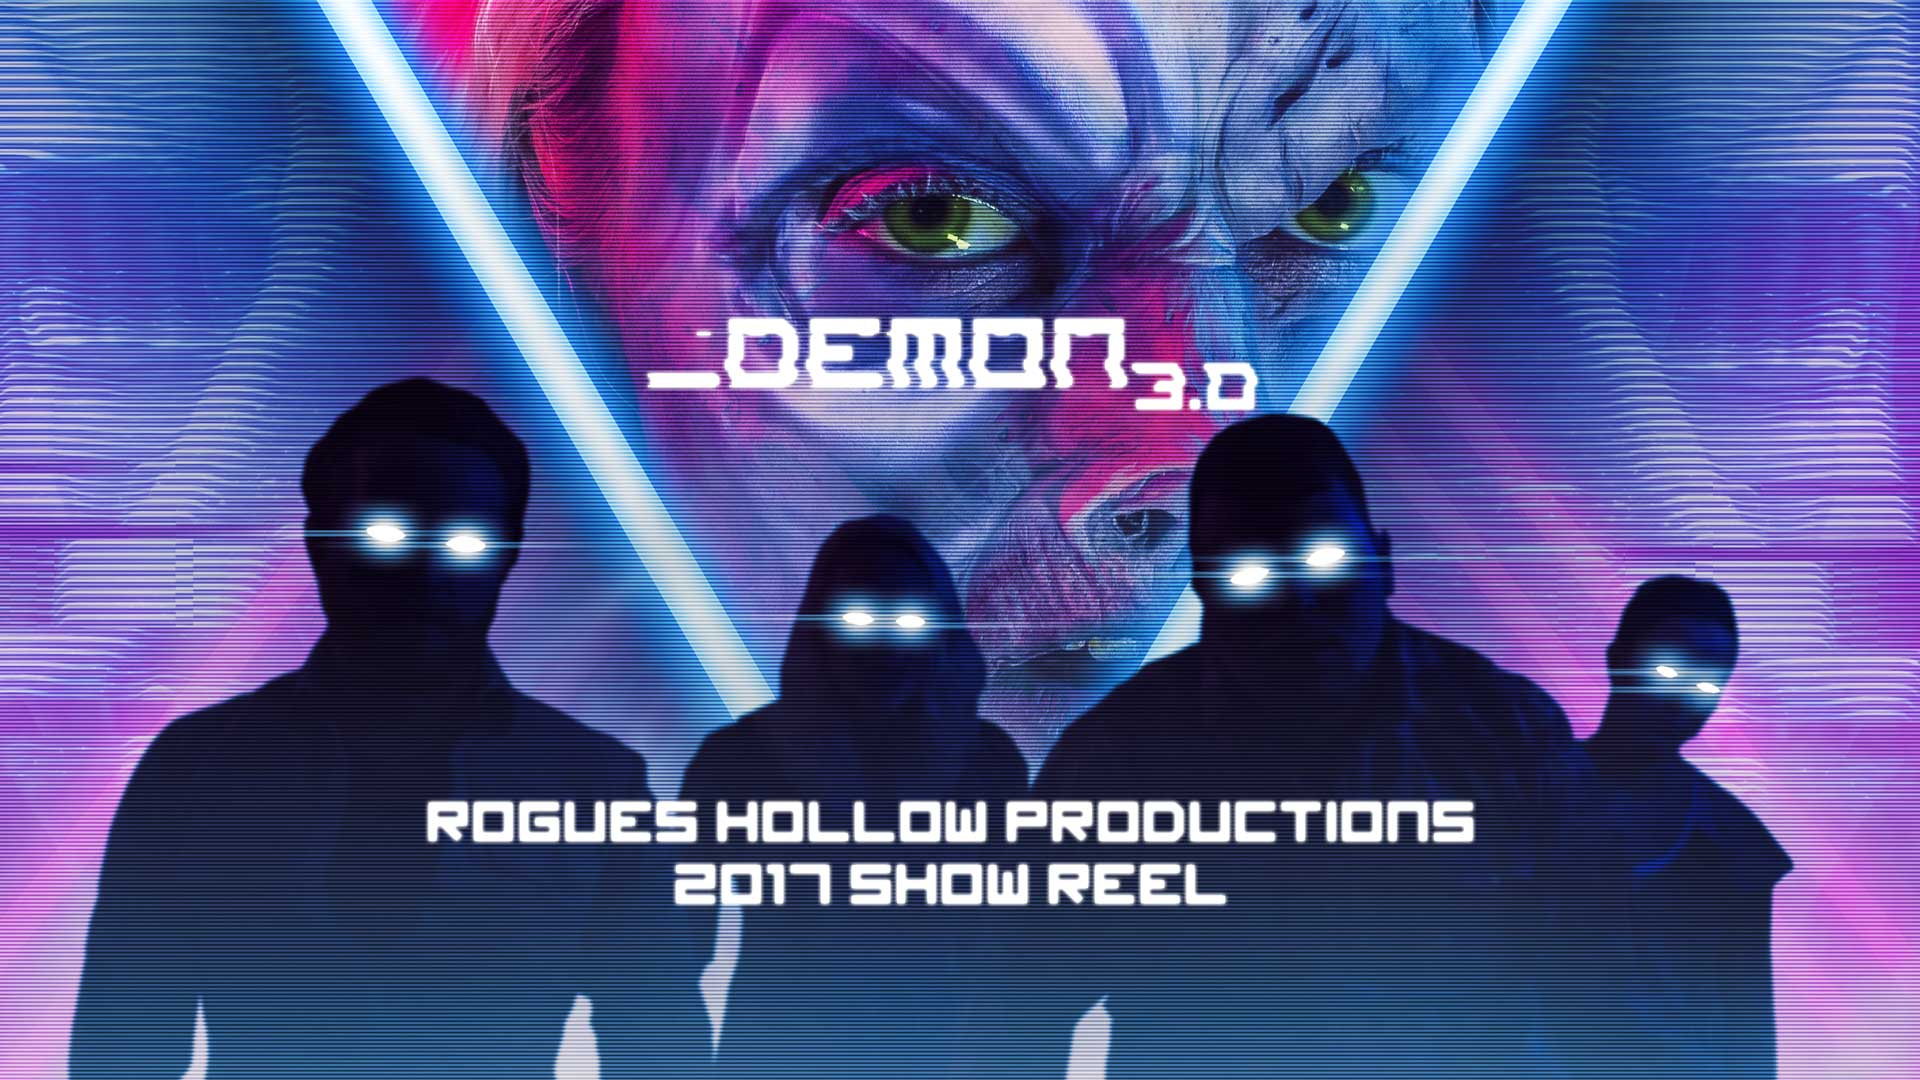 Demon 3.0 – 2017 Rogues Hollow Show Reel